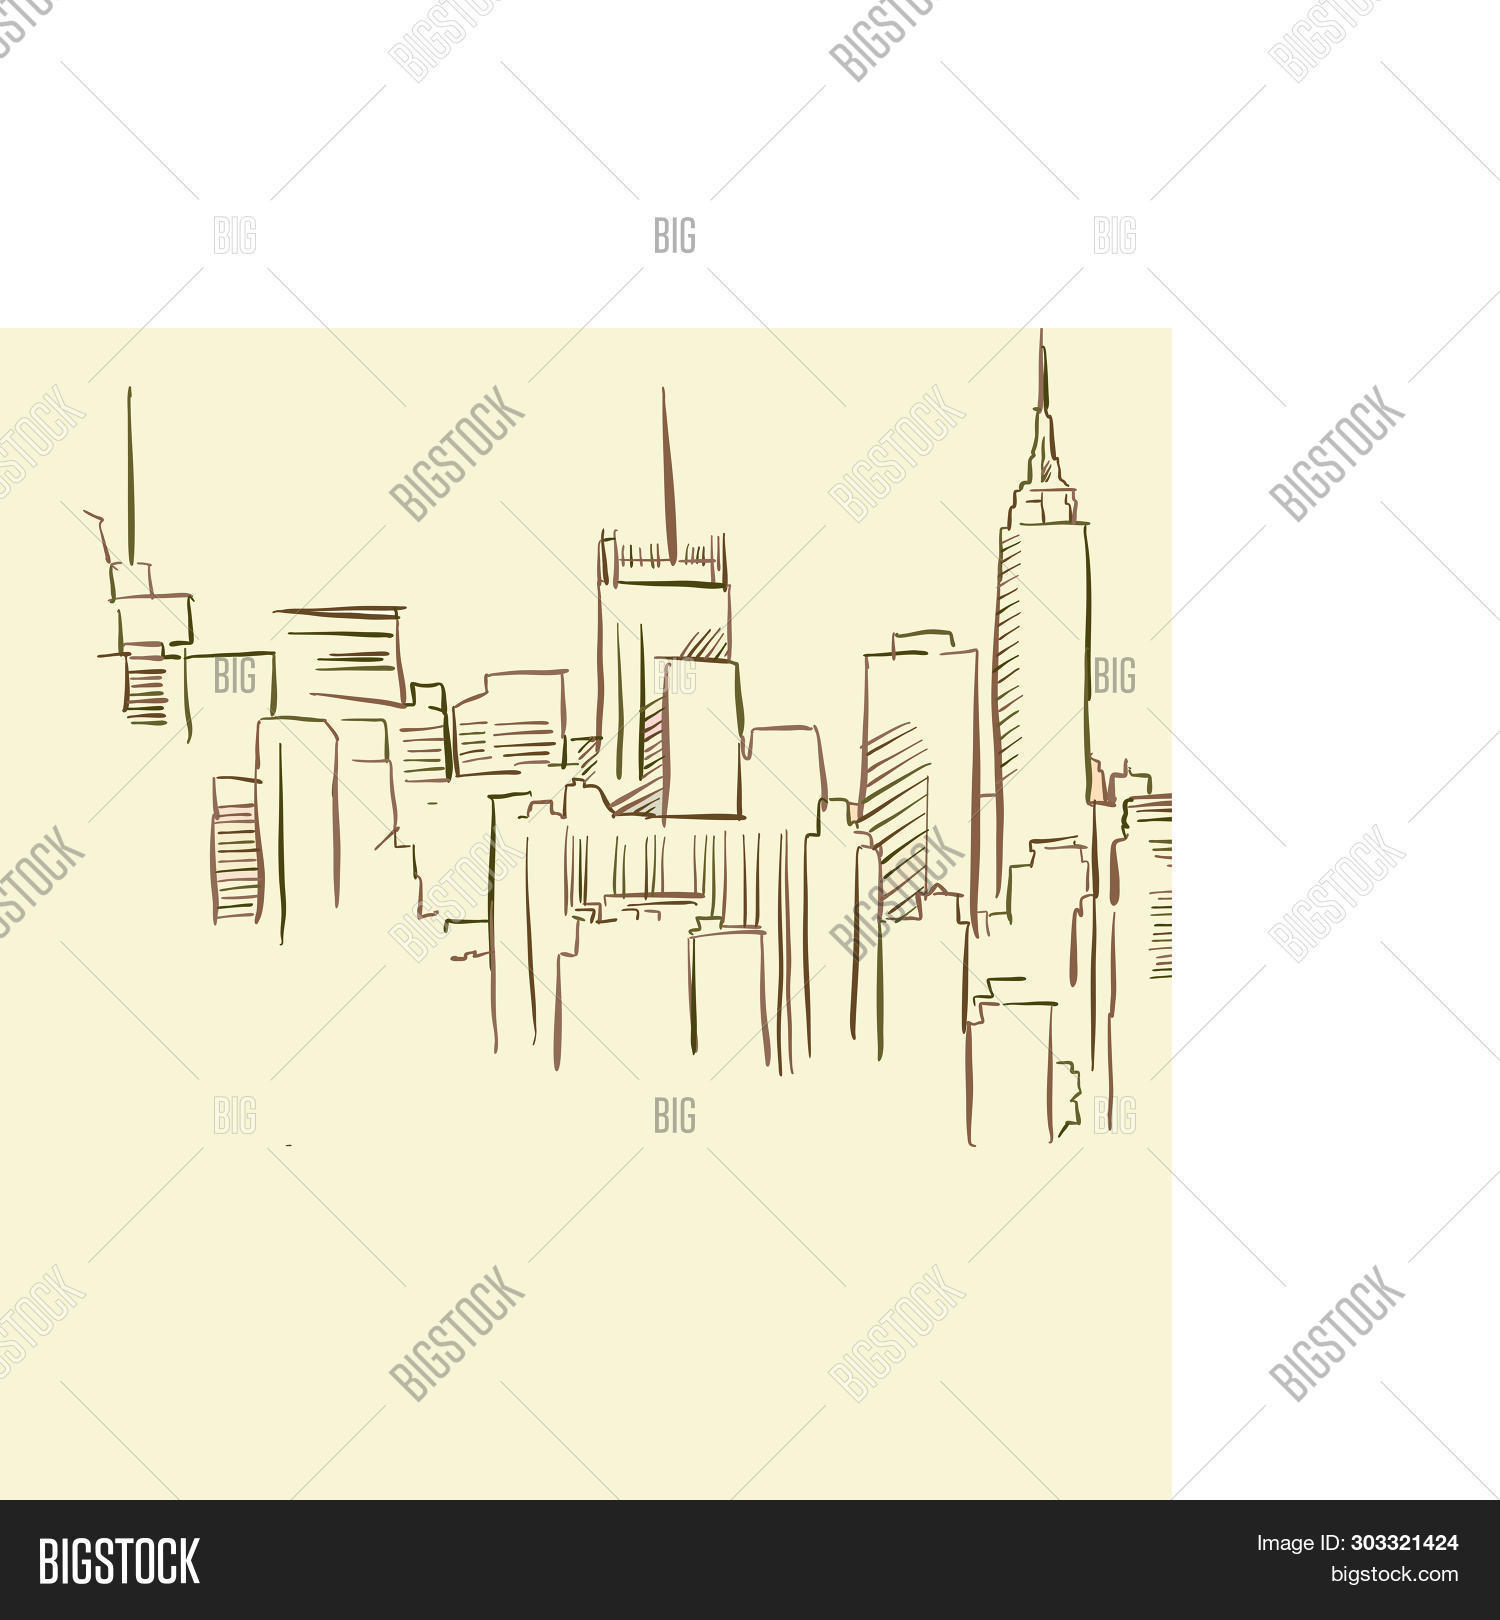 Metropolis Panorama Drawing, Brown Colored Version For Apps, Print Or Web Backgrounds